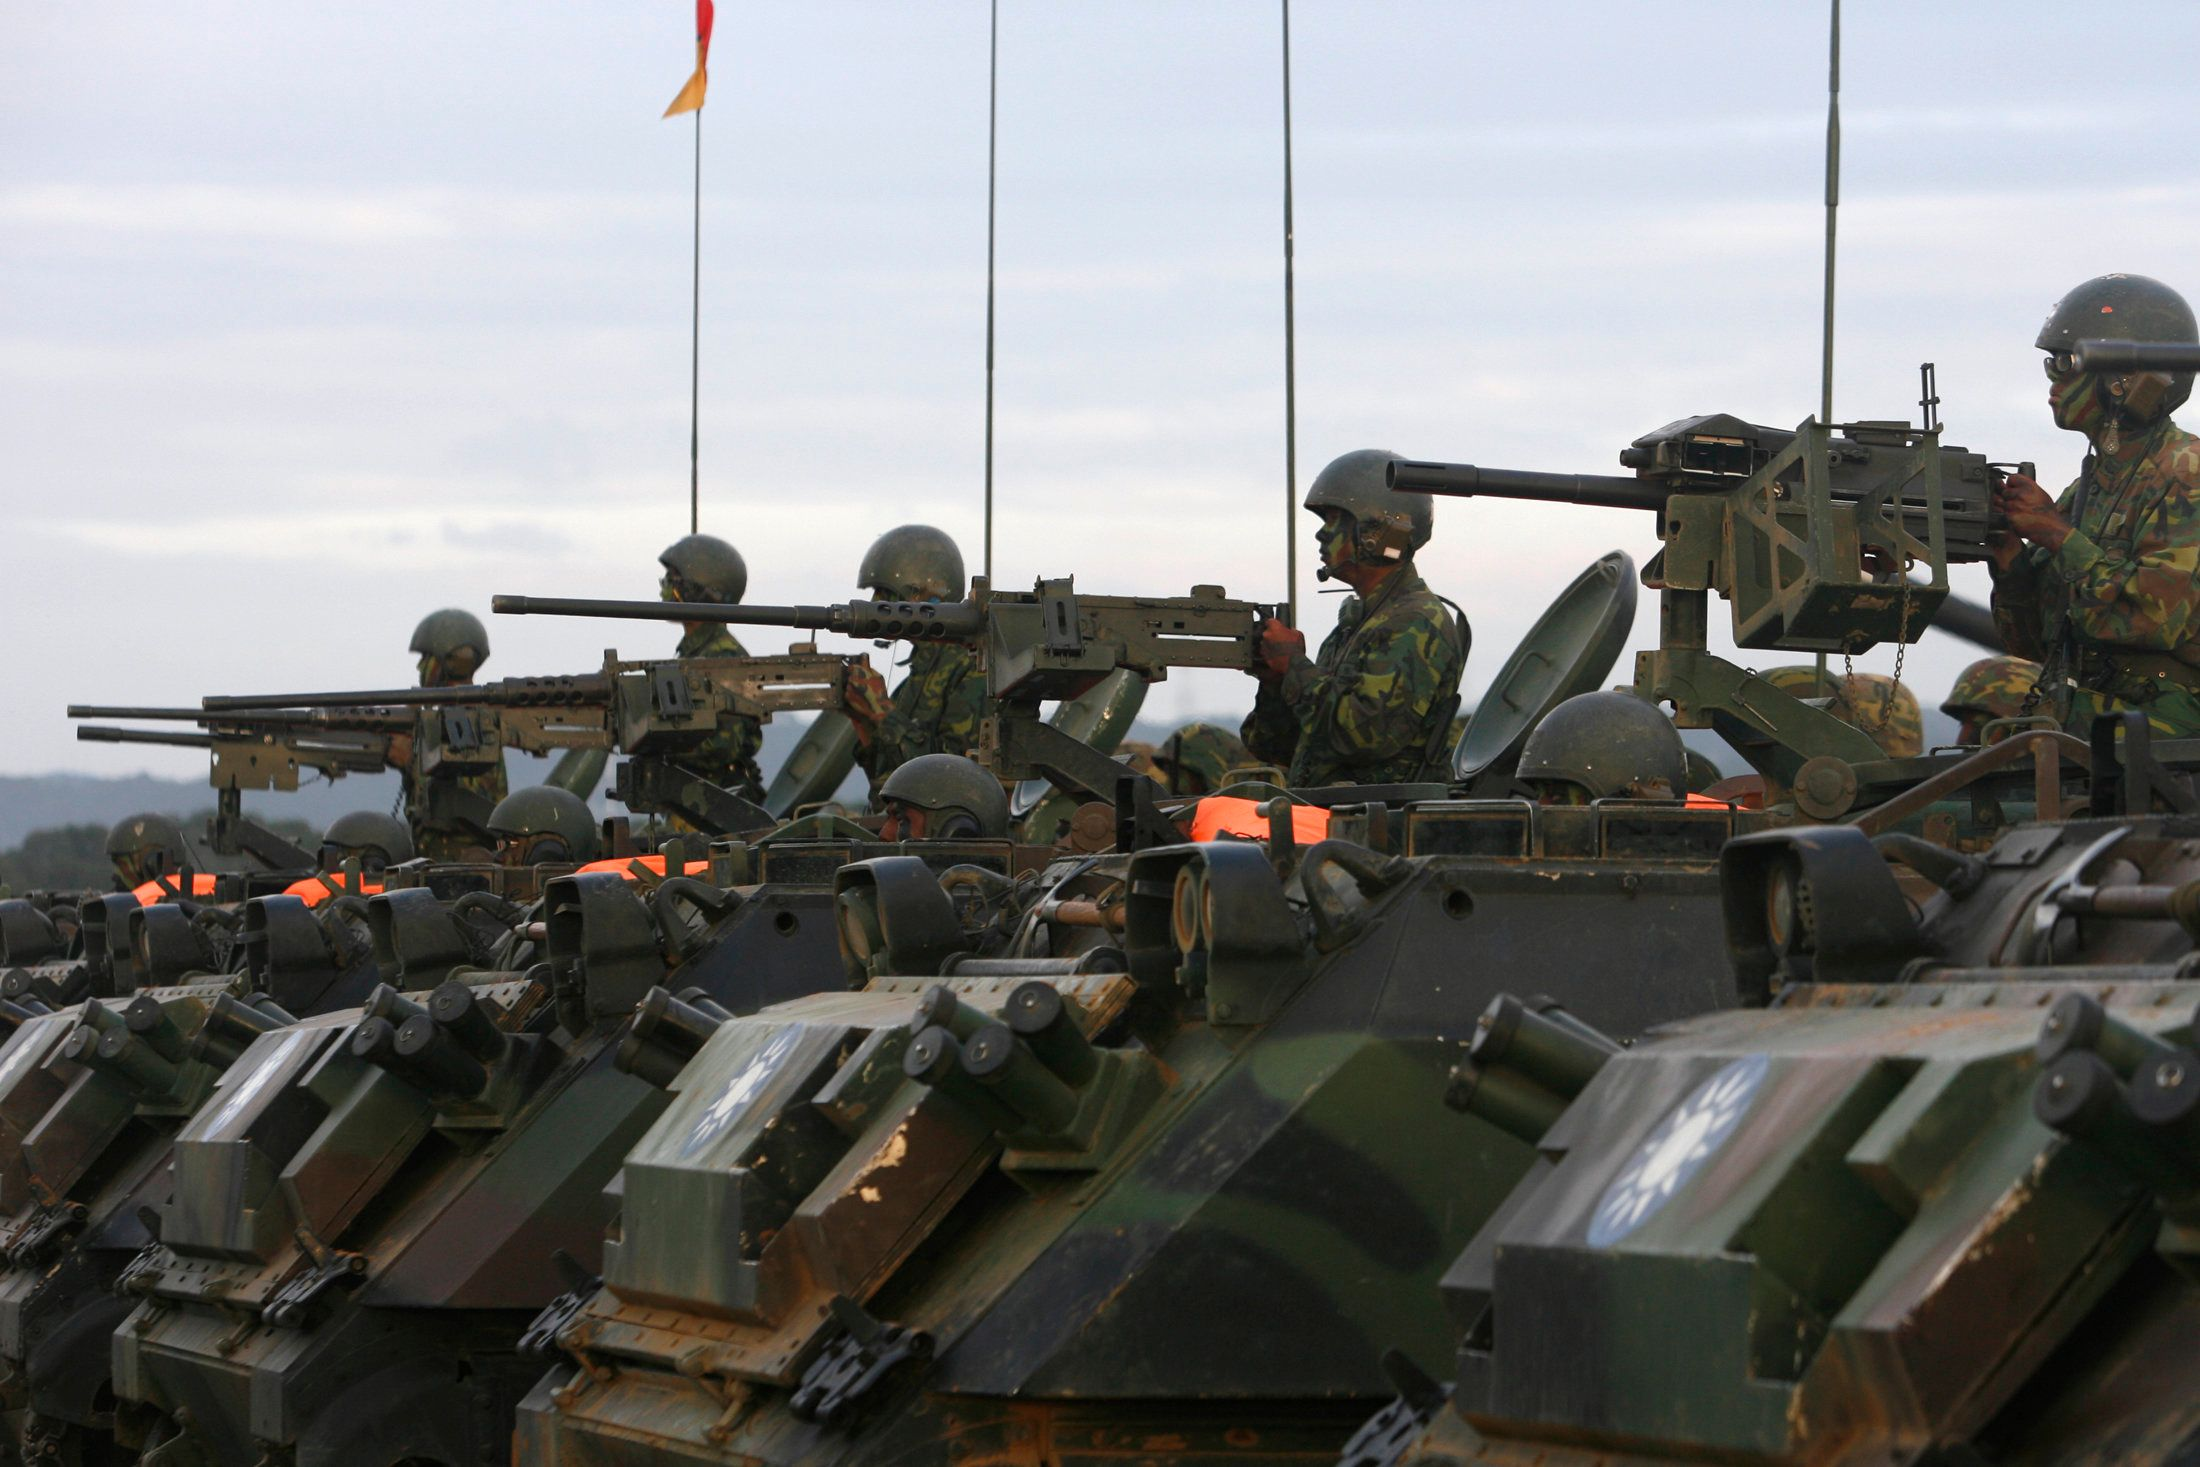 Soldier aim their weapons on CM21A1 armoured infantry fighting vehicles during an army exercise in Hsinchu, central Taiwan January 27, 2010. A U.S. arms sale to Taiwan is likely to offer a short-term boost to the flagging popularity of the island's president by making him look strong in standing up to China, but may delay the critical trade deals he has pushed.    REUTERS/Nicky Loh (TAIWAN - Tags: MILITARY POLITICS)